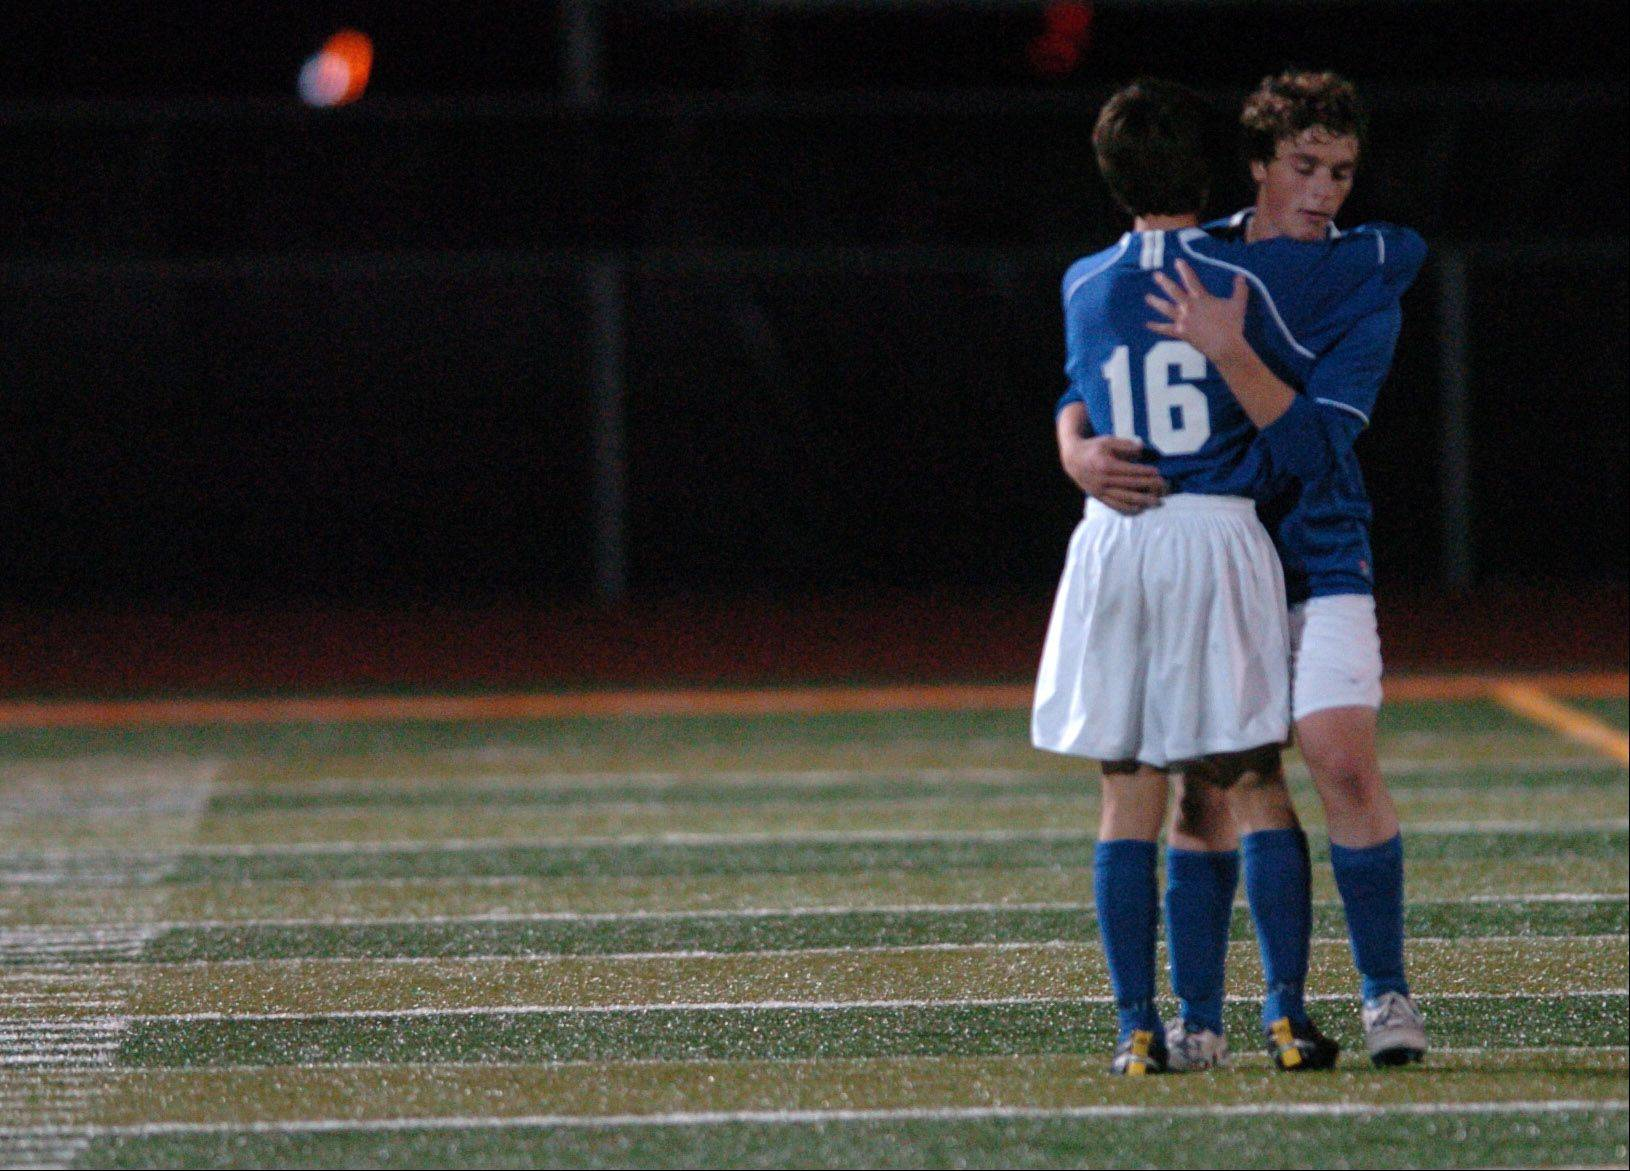 St. Francis' Brett Jungles, 16, hugs teammate Perry Poulos after their loss to Mather Tuesday in the DeKalb supersectional soccer game.